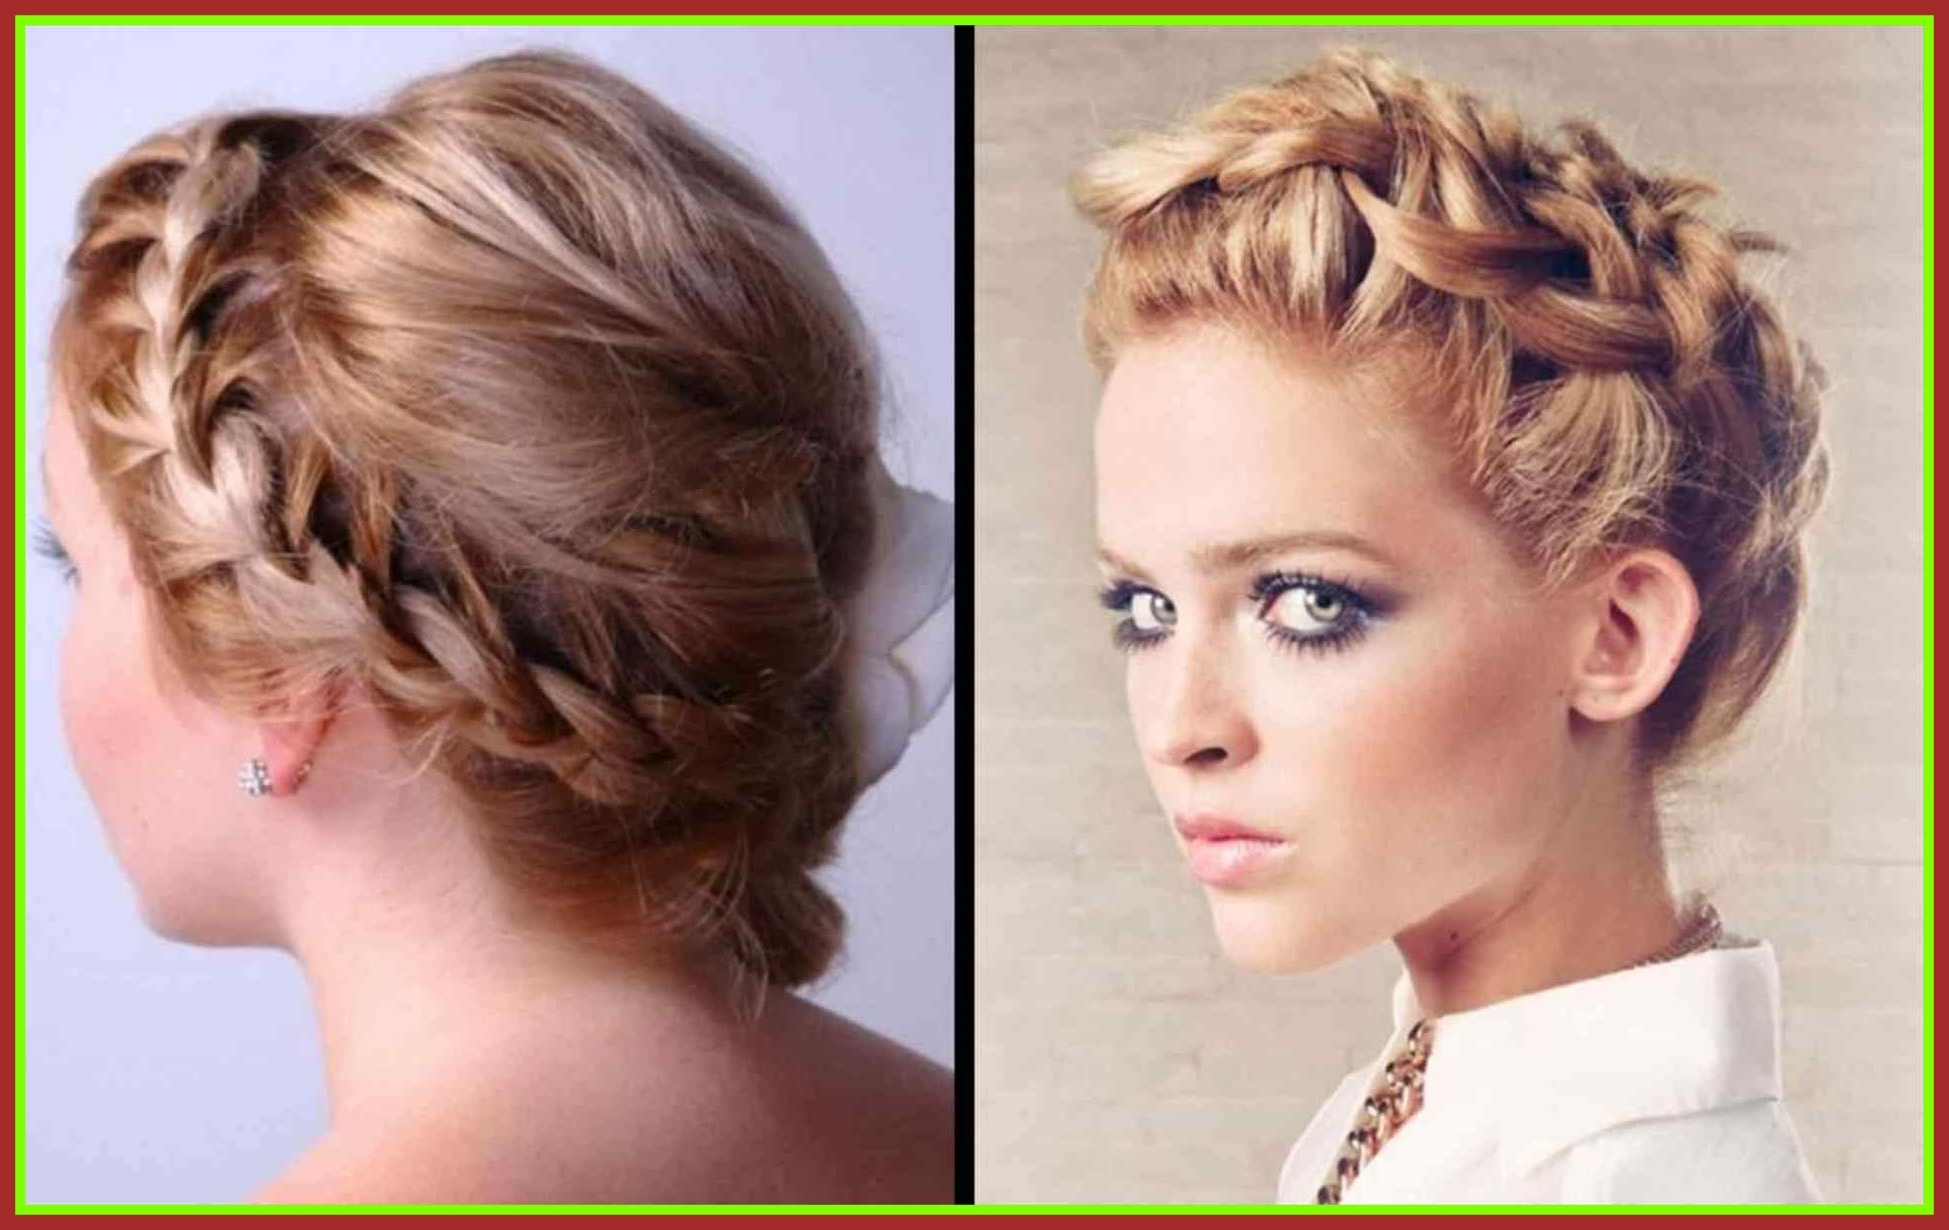 Latest Quick Wedding Hairstyles With Regard To Fascinating Quick Wedding Hairstyles Updo To The Side For Prom Or (View 11 of 15)